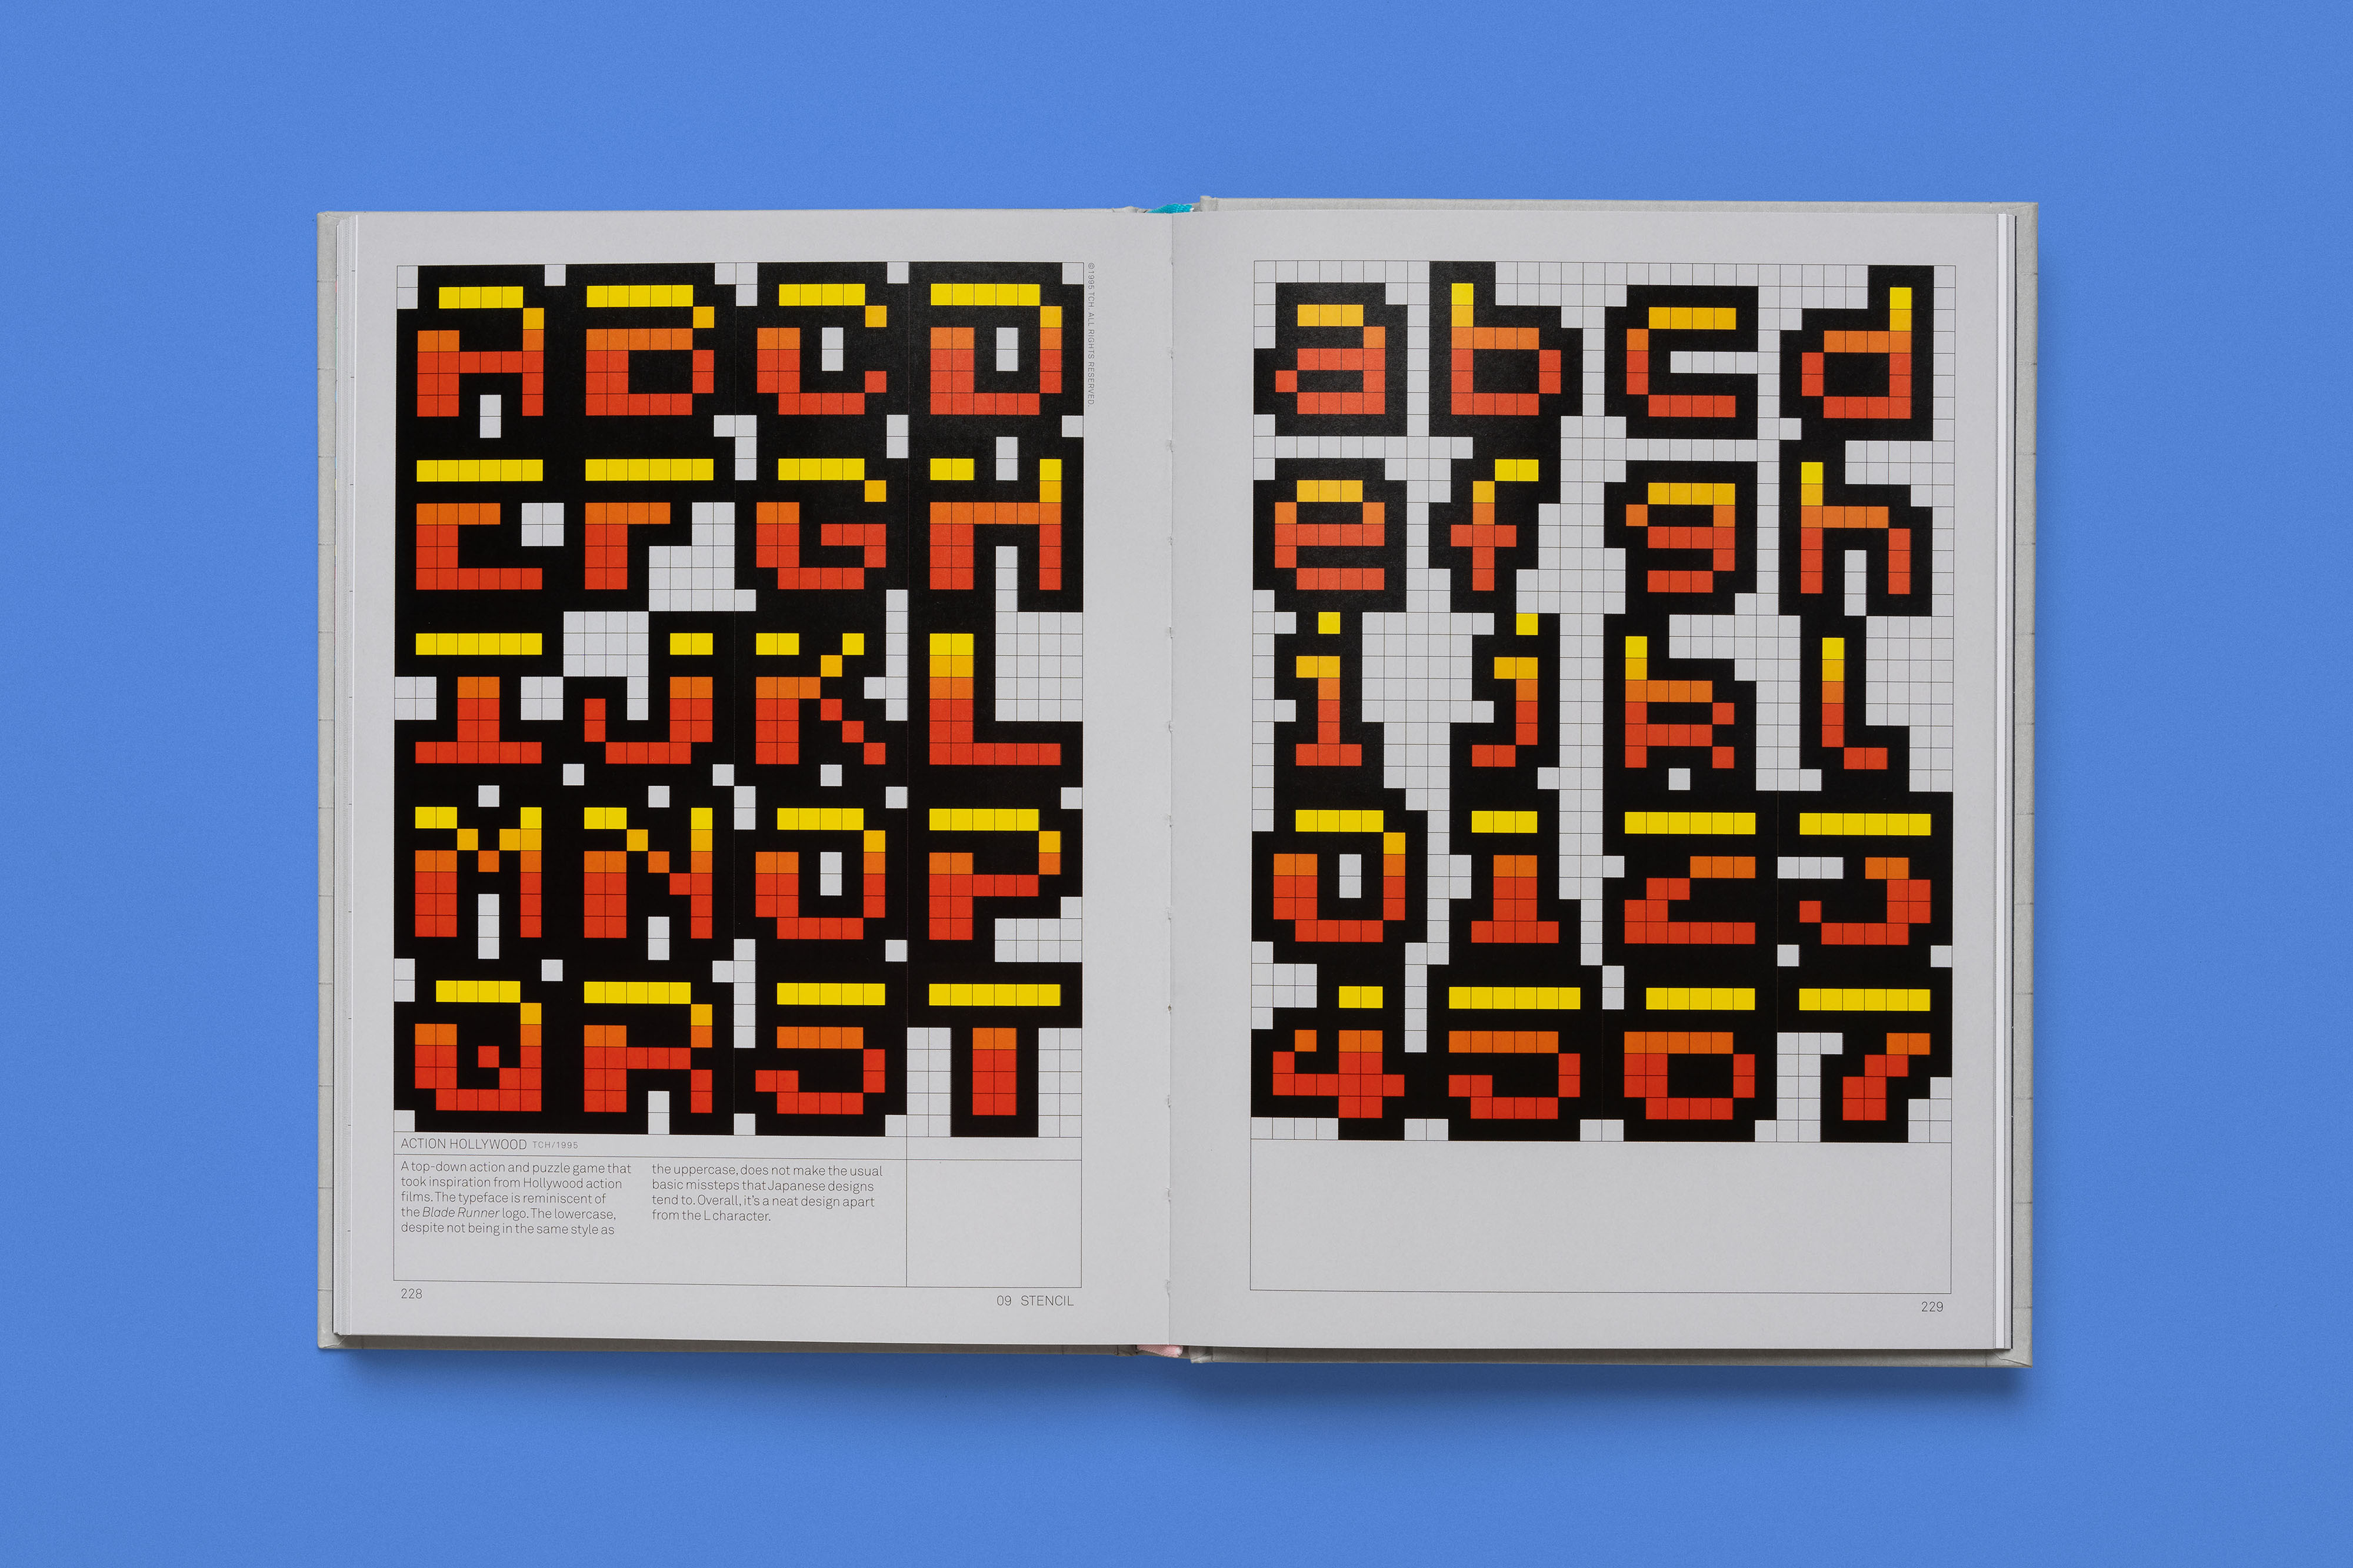 Old Arcade Games Had Just The Most Beautiful Typography